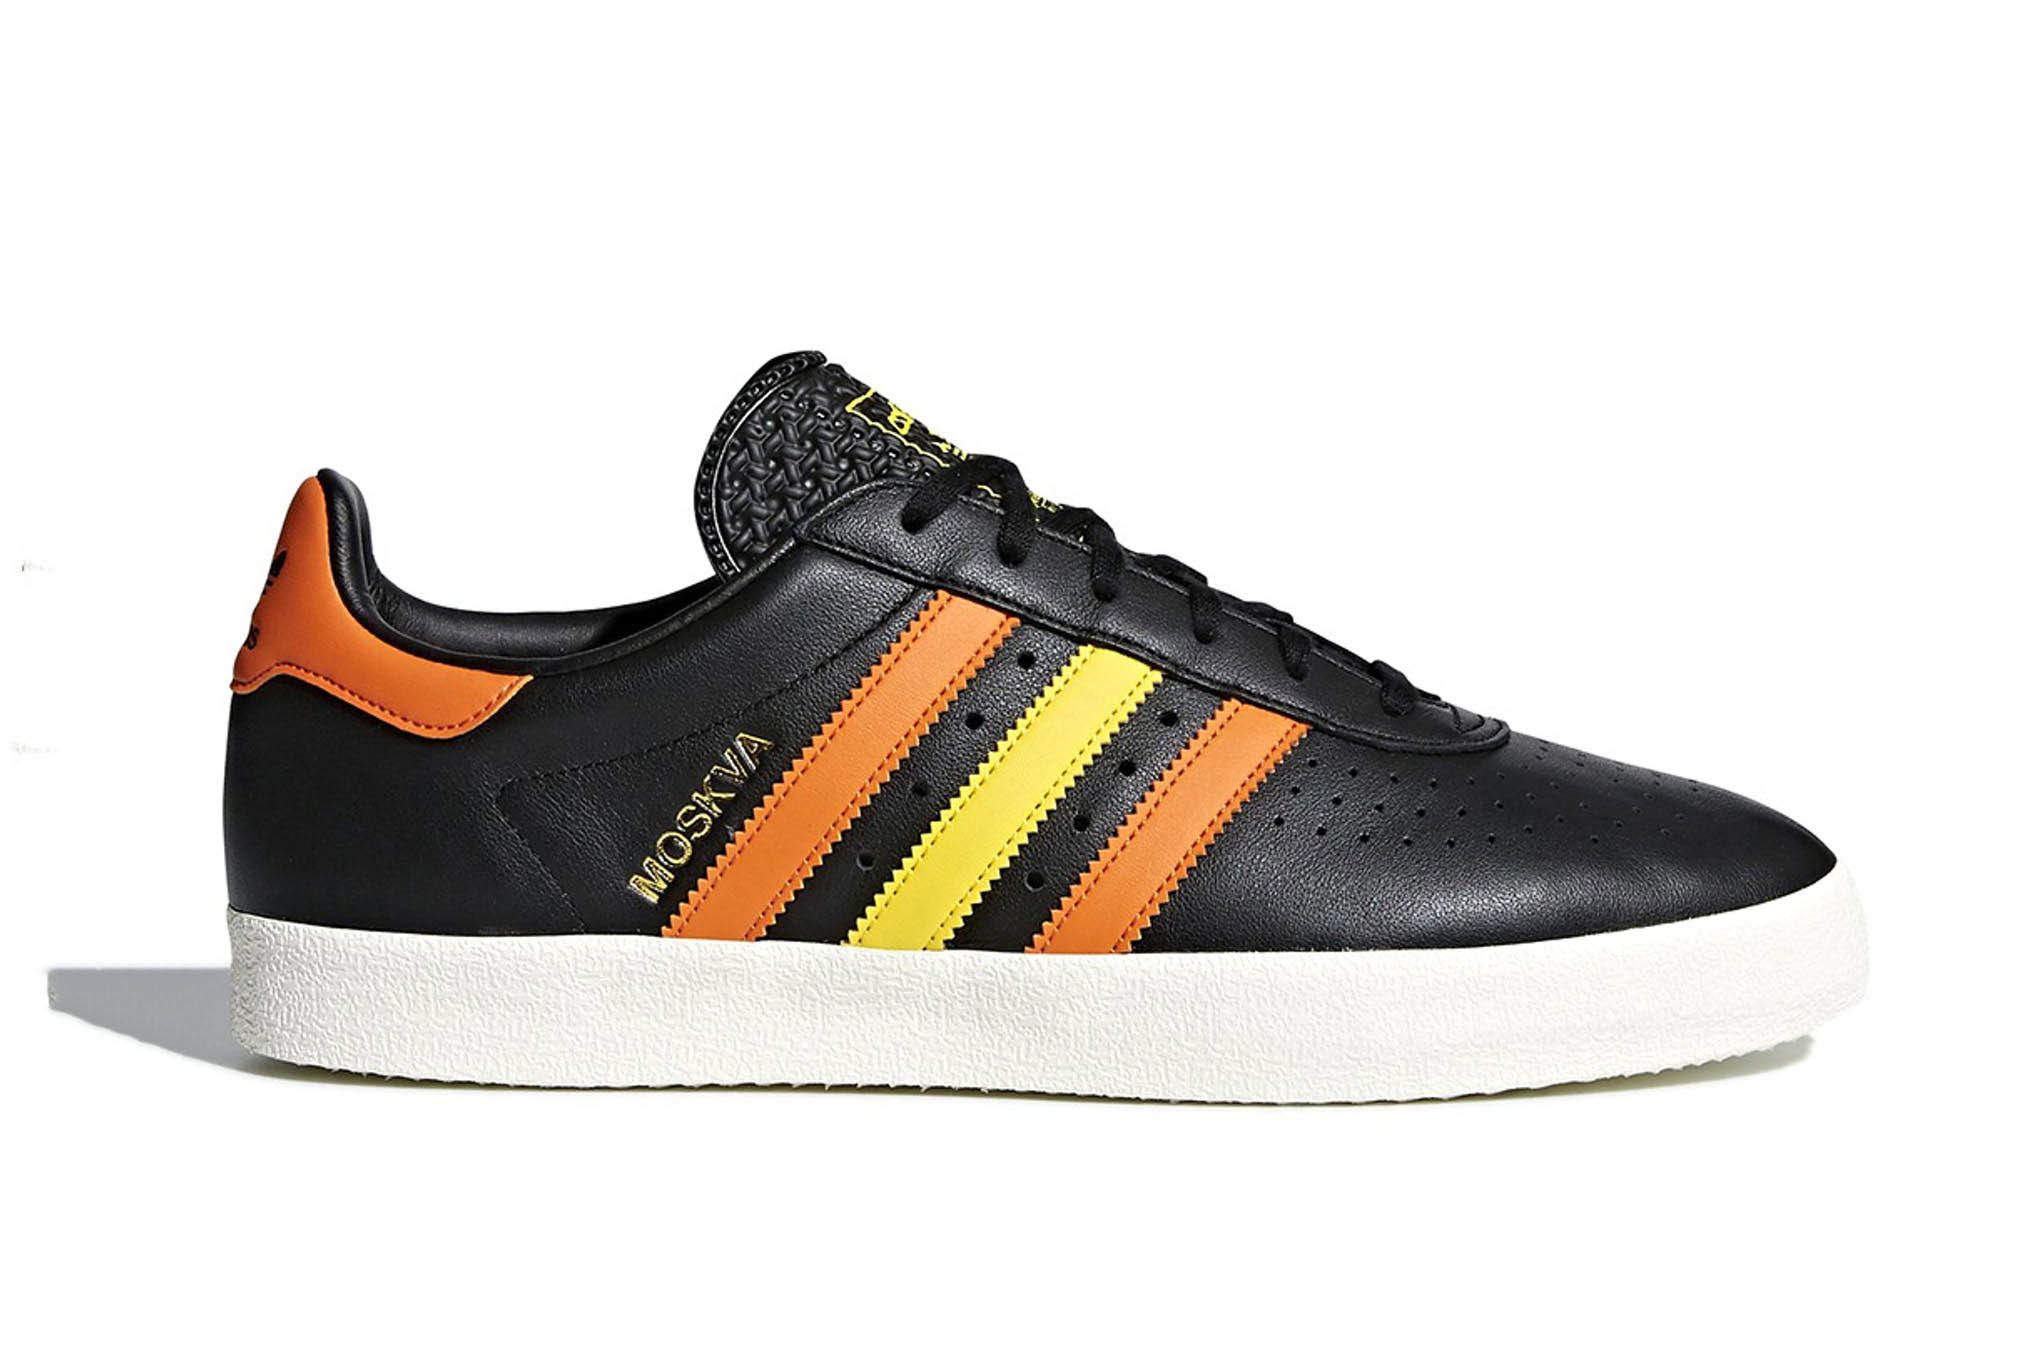 Adidas 350 Moscow Black White Leather Release 1 Sneaker Freaker